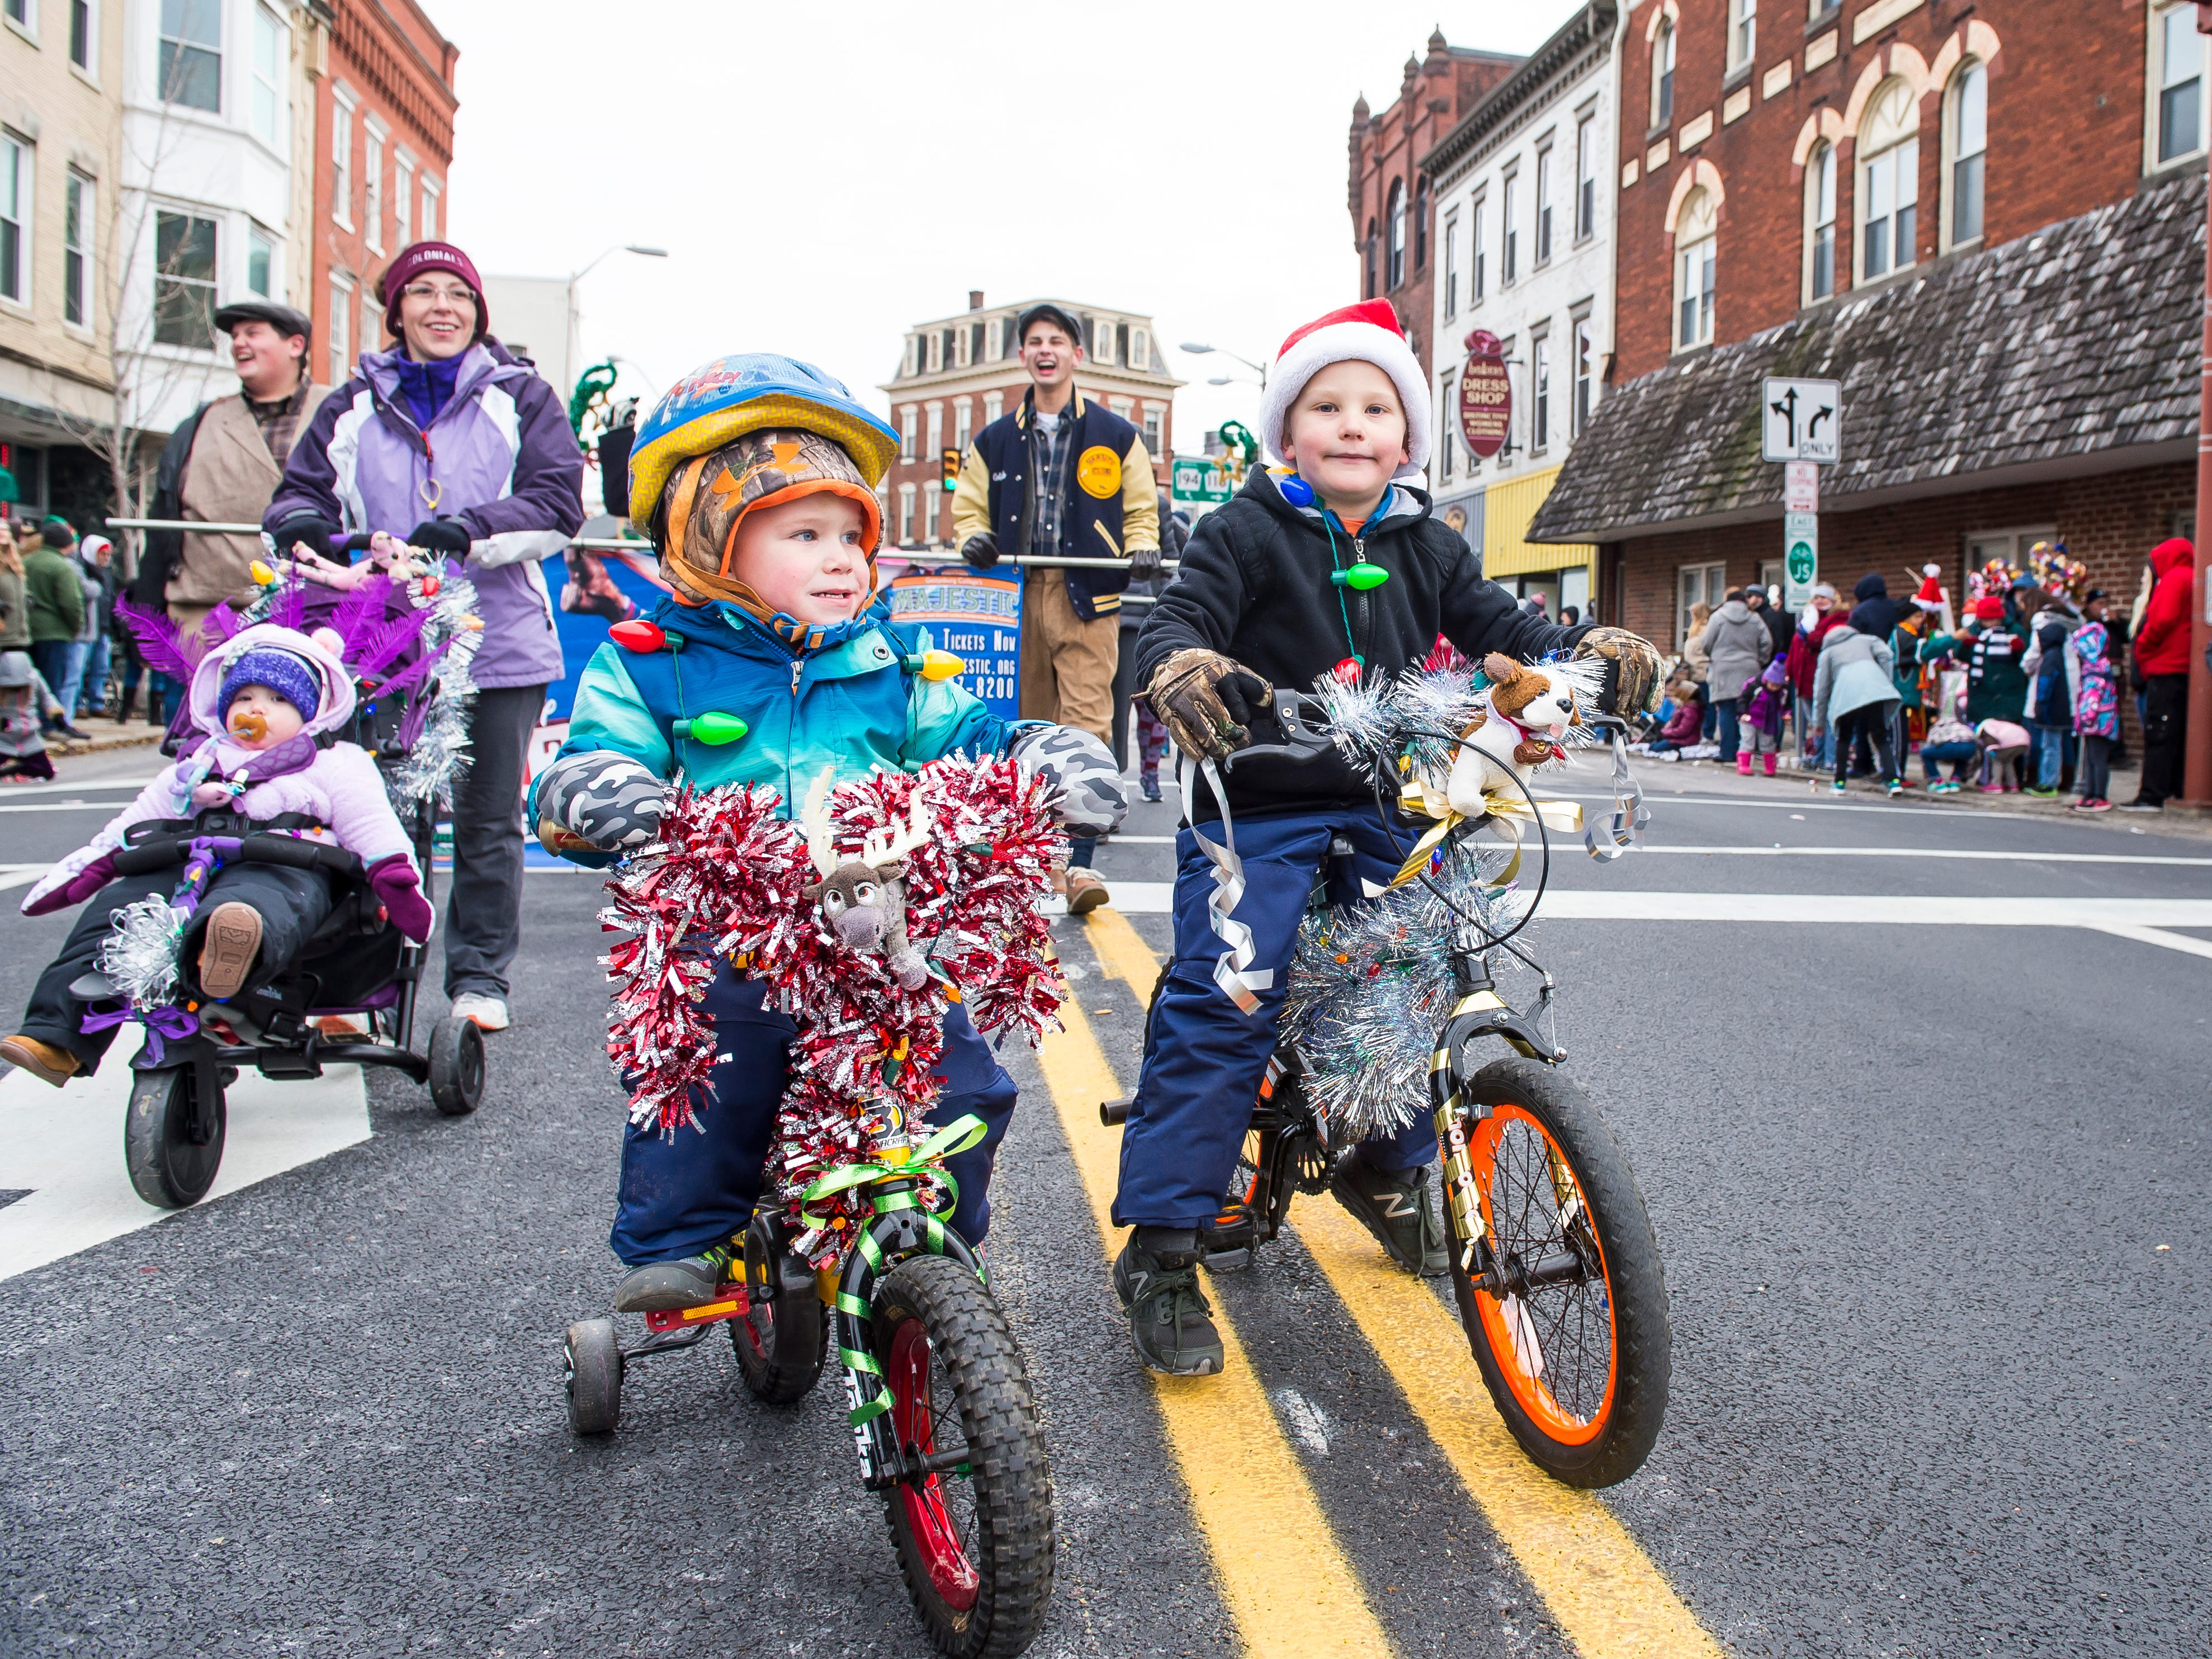 Children ride bicycles in the annual Hanover Christmas parade on Friday, November, 23, 2018.